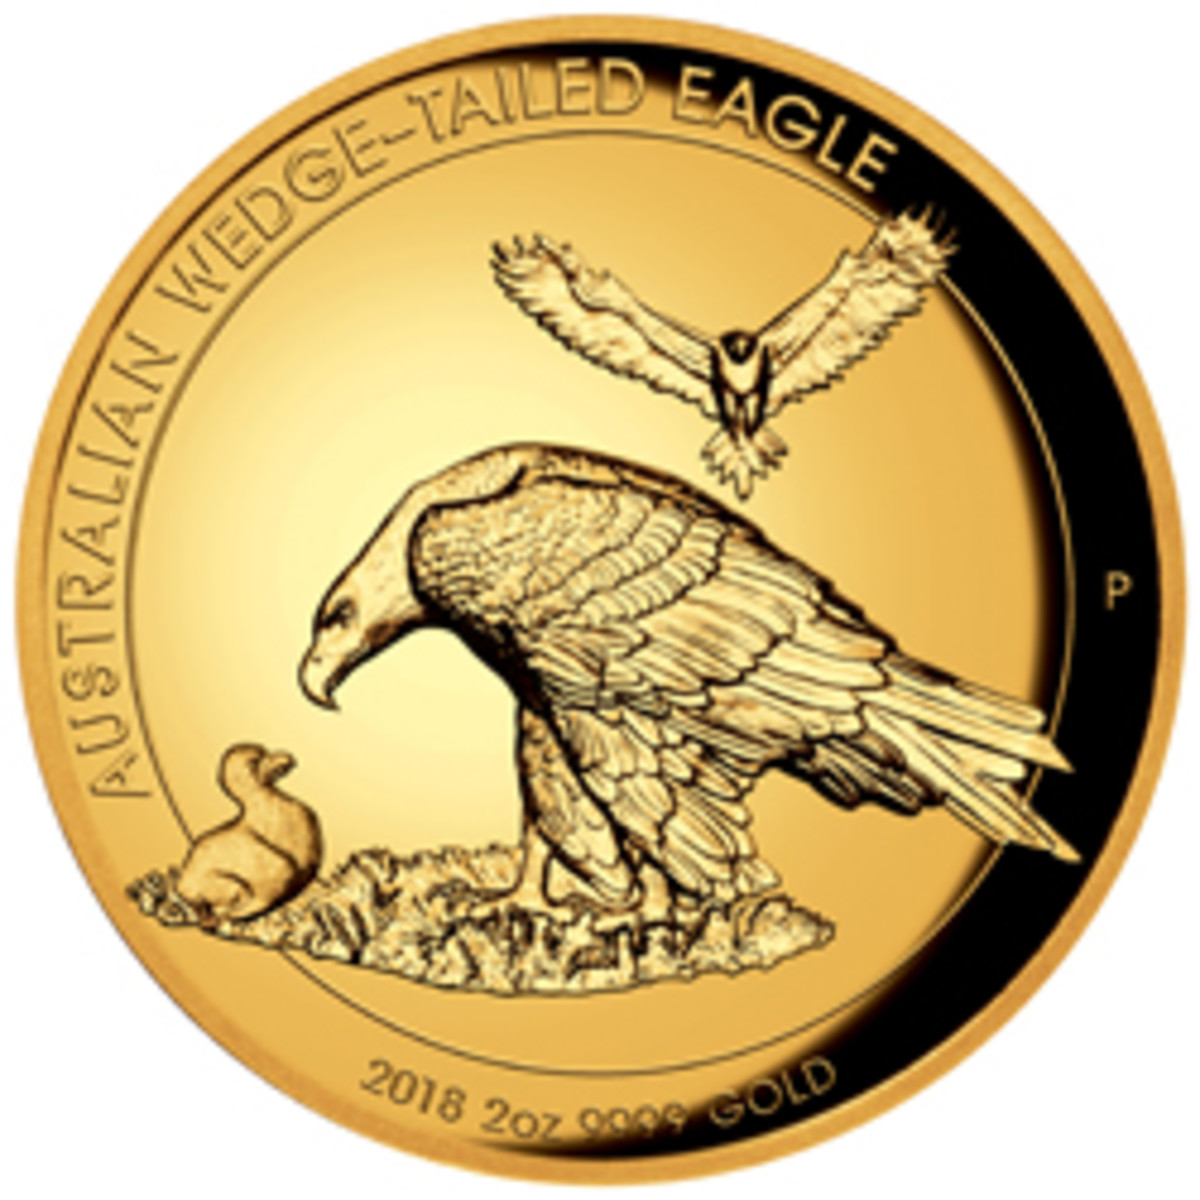 (Image courtesy and © The Perth Mint)